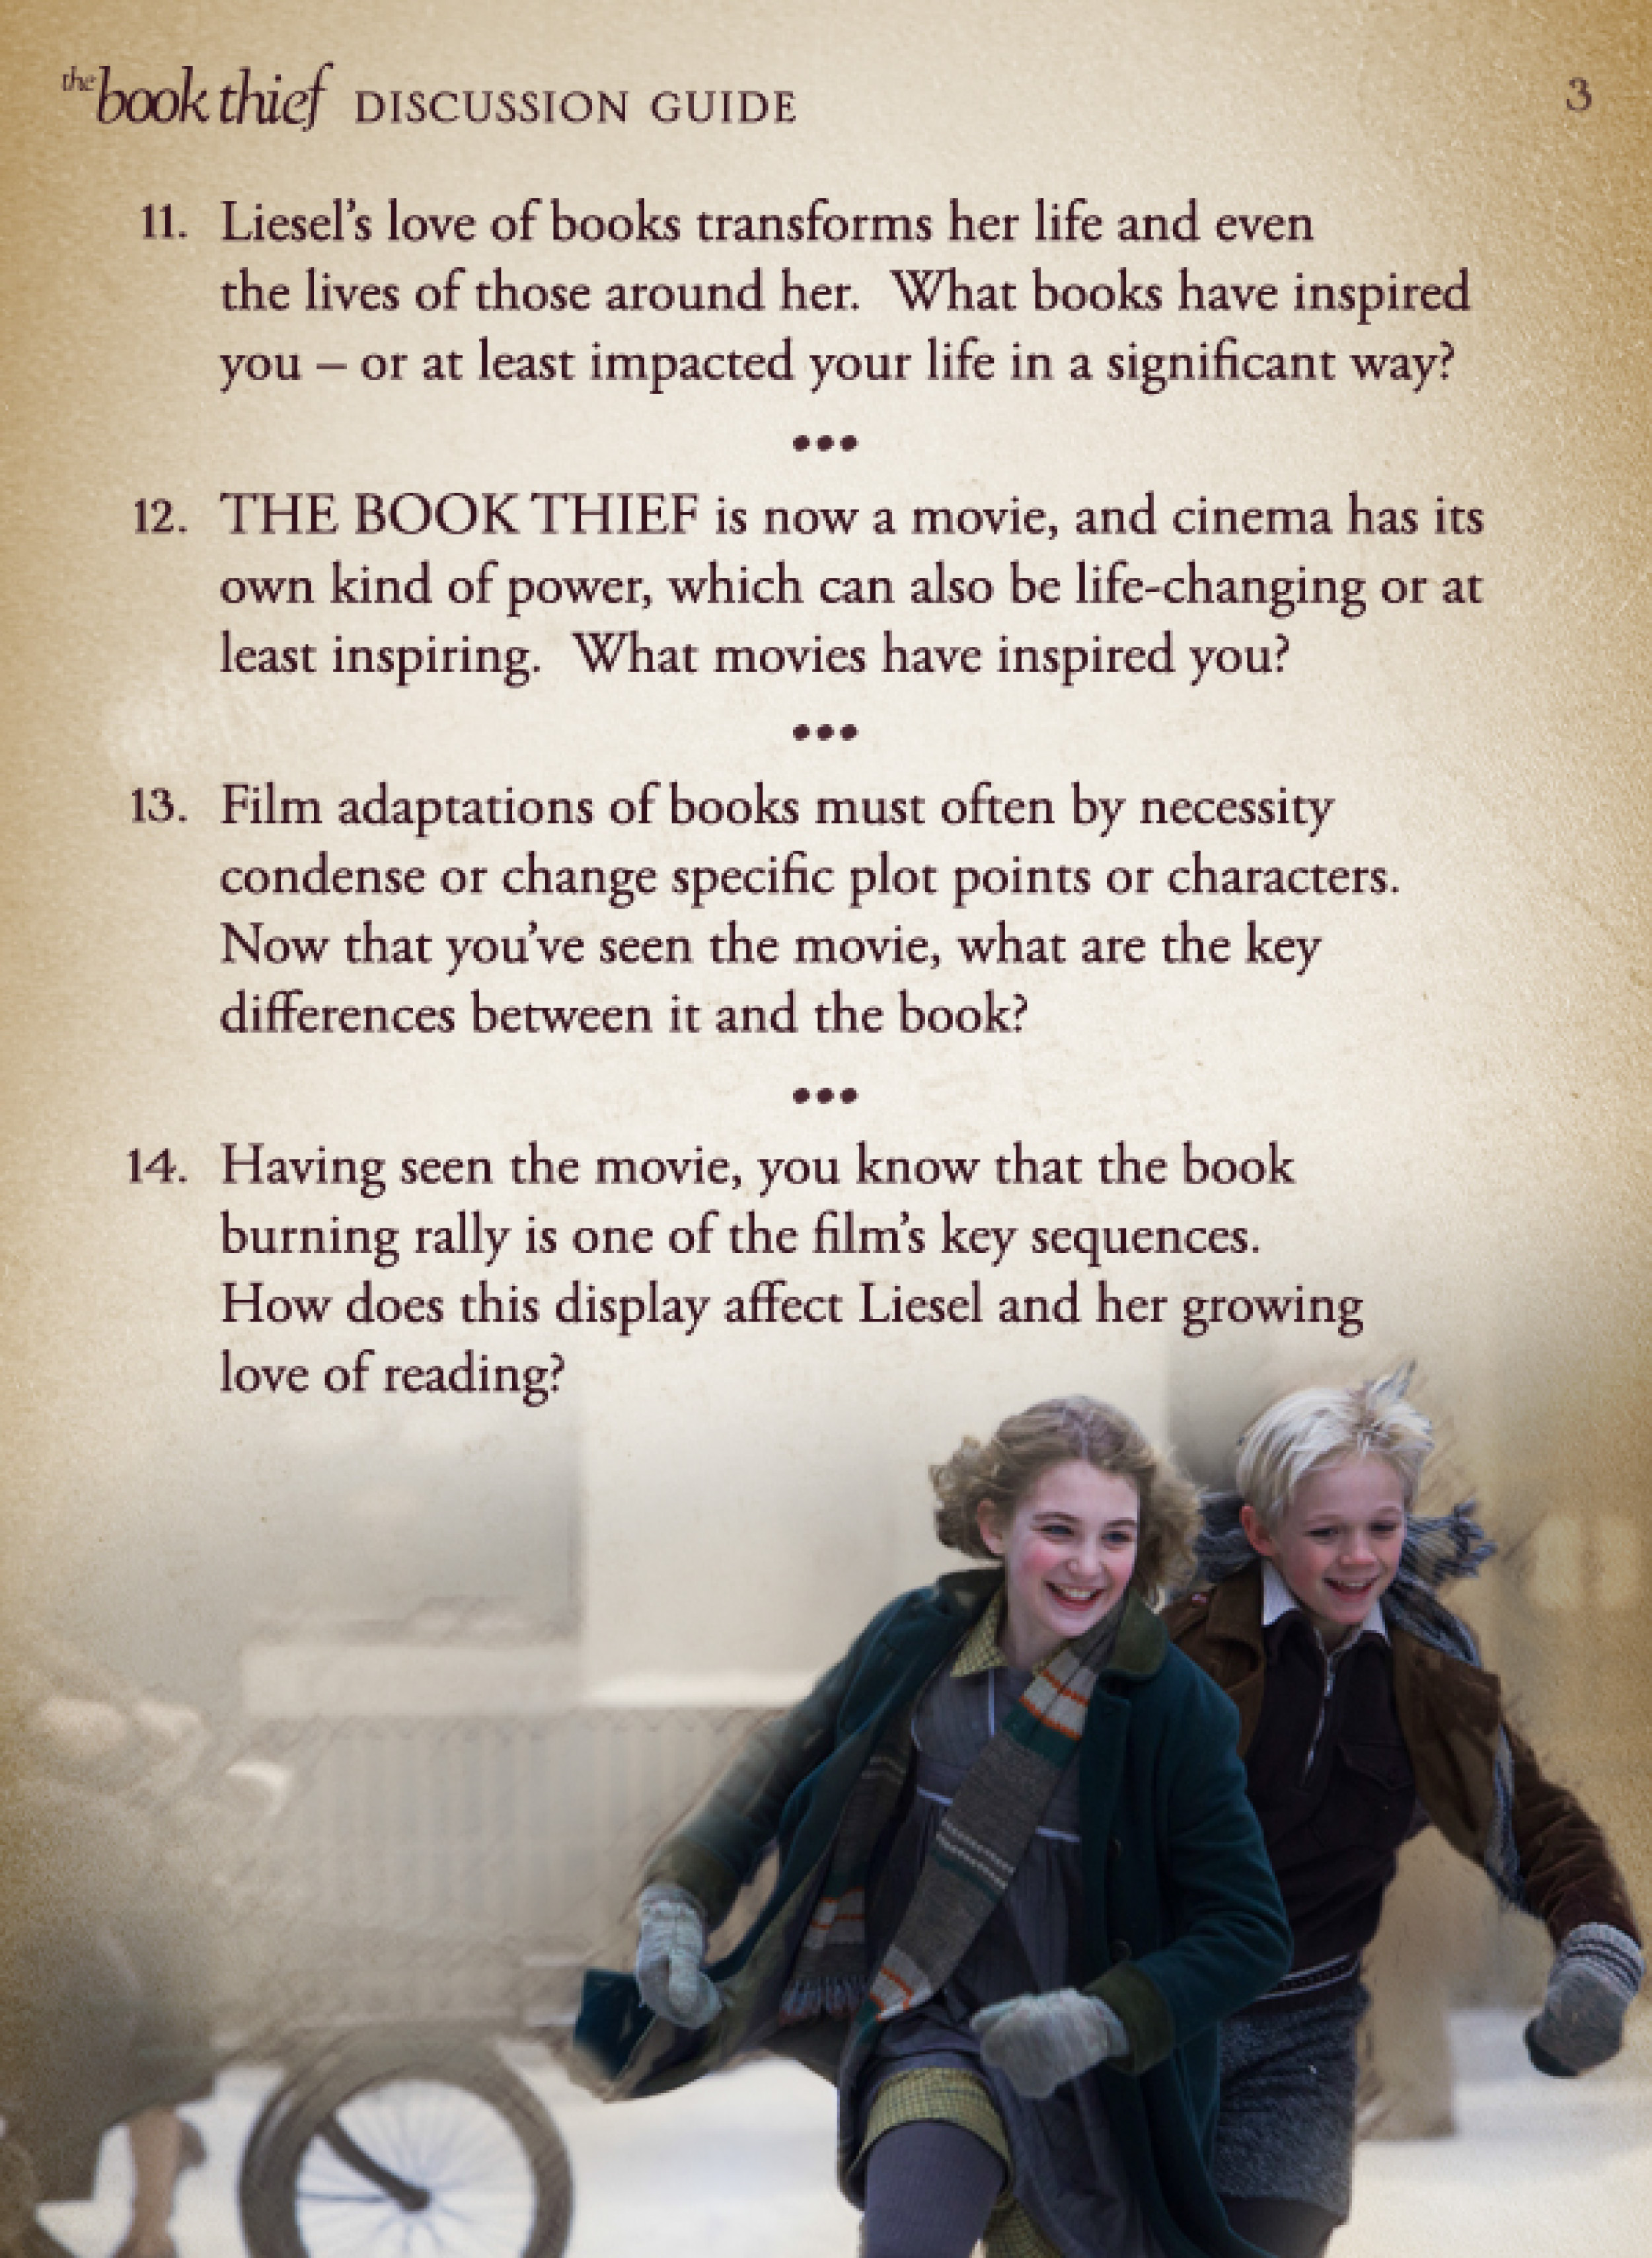 the book thief dvd review bookthiefdiscussionguide bookthiefdiscussionguide bookthiefdiscussionguide bookthiefdiscussionguide bookthiefdiscussionguide